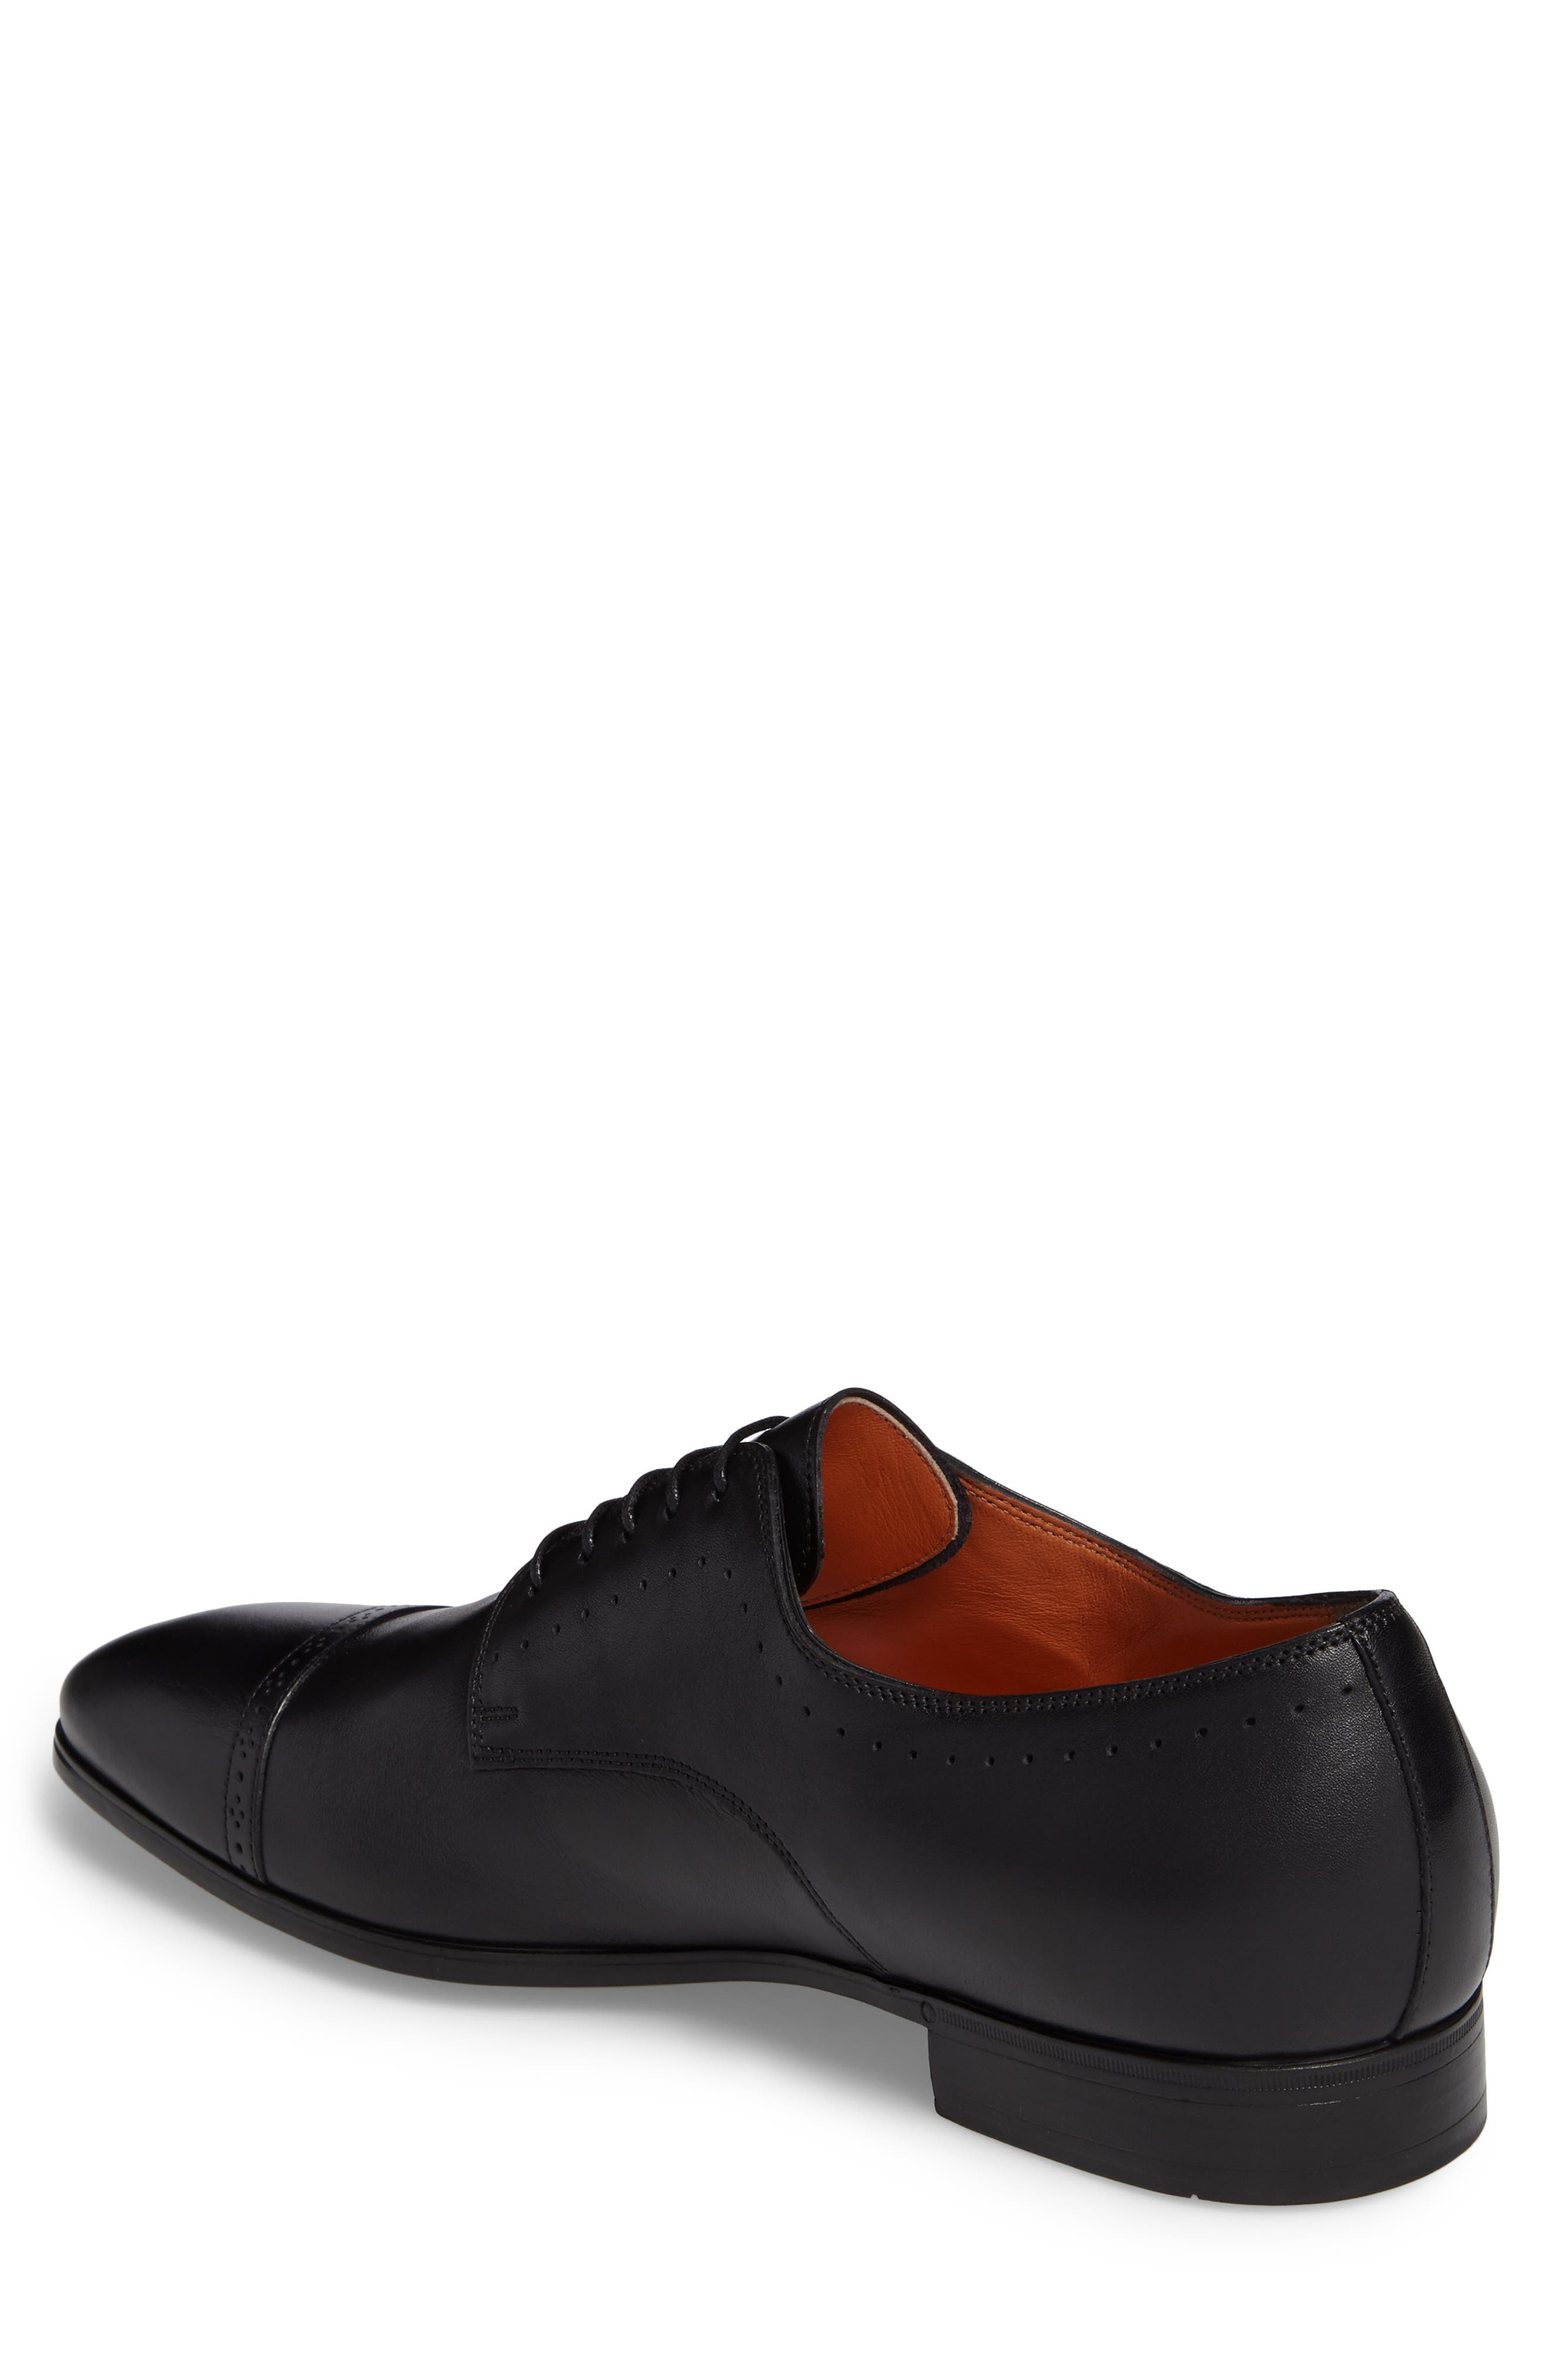 SANTONI, Gareth Cap Toe Derby, Alternate thumbnail 2, color, BLACK LEATHER